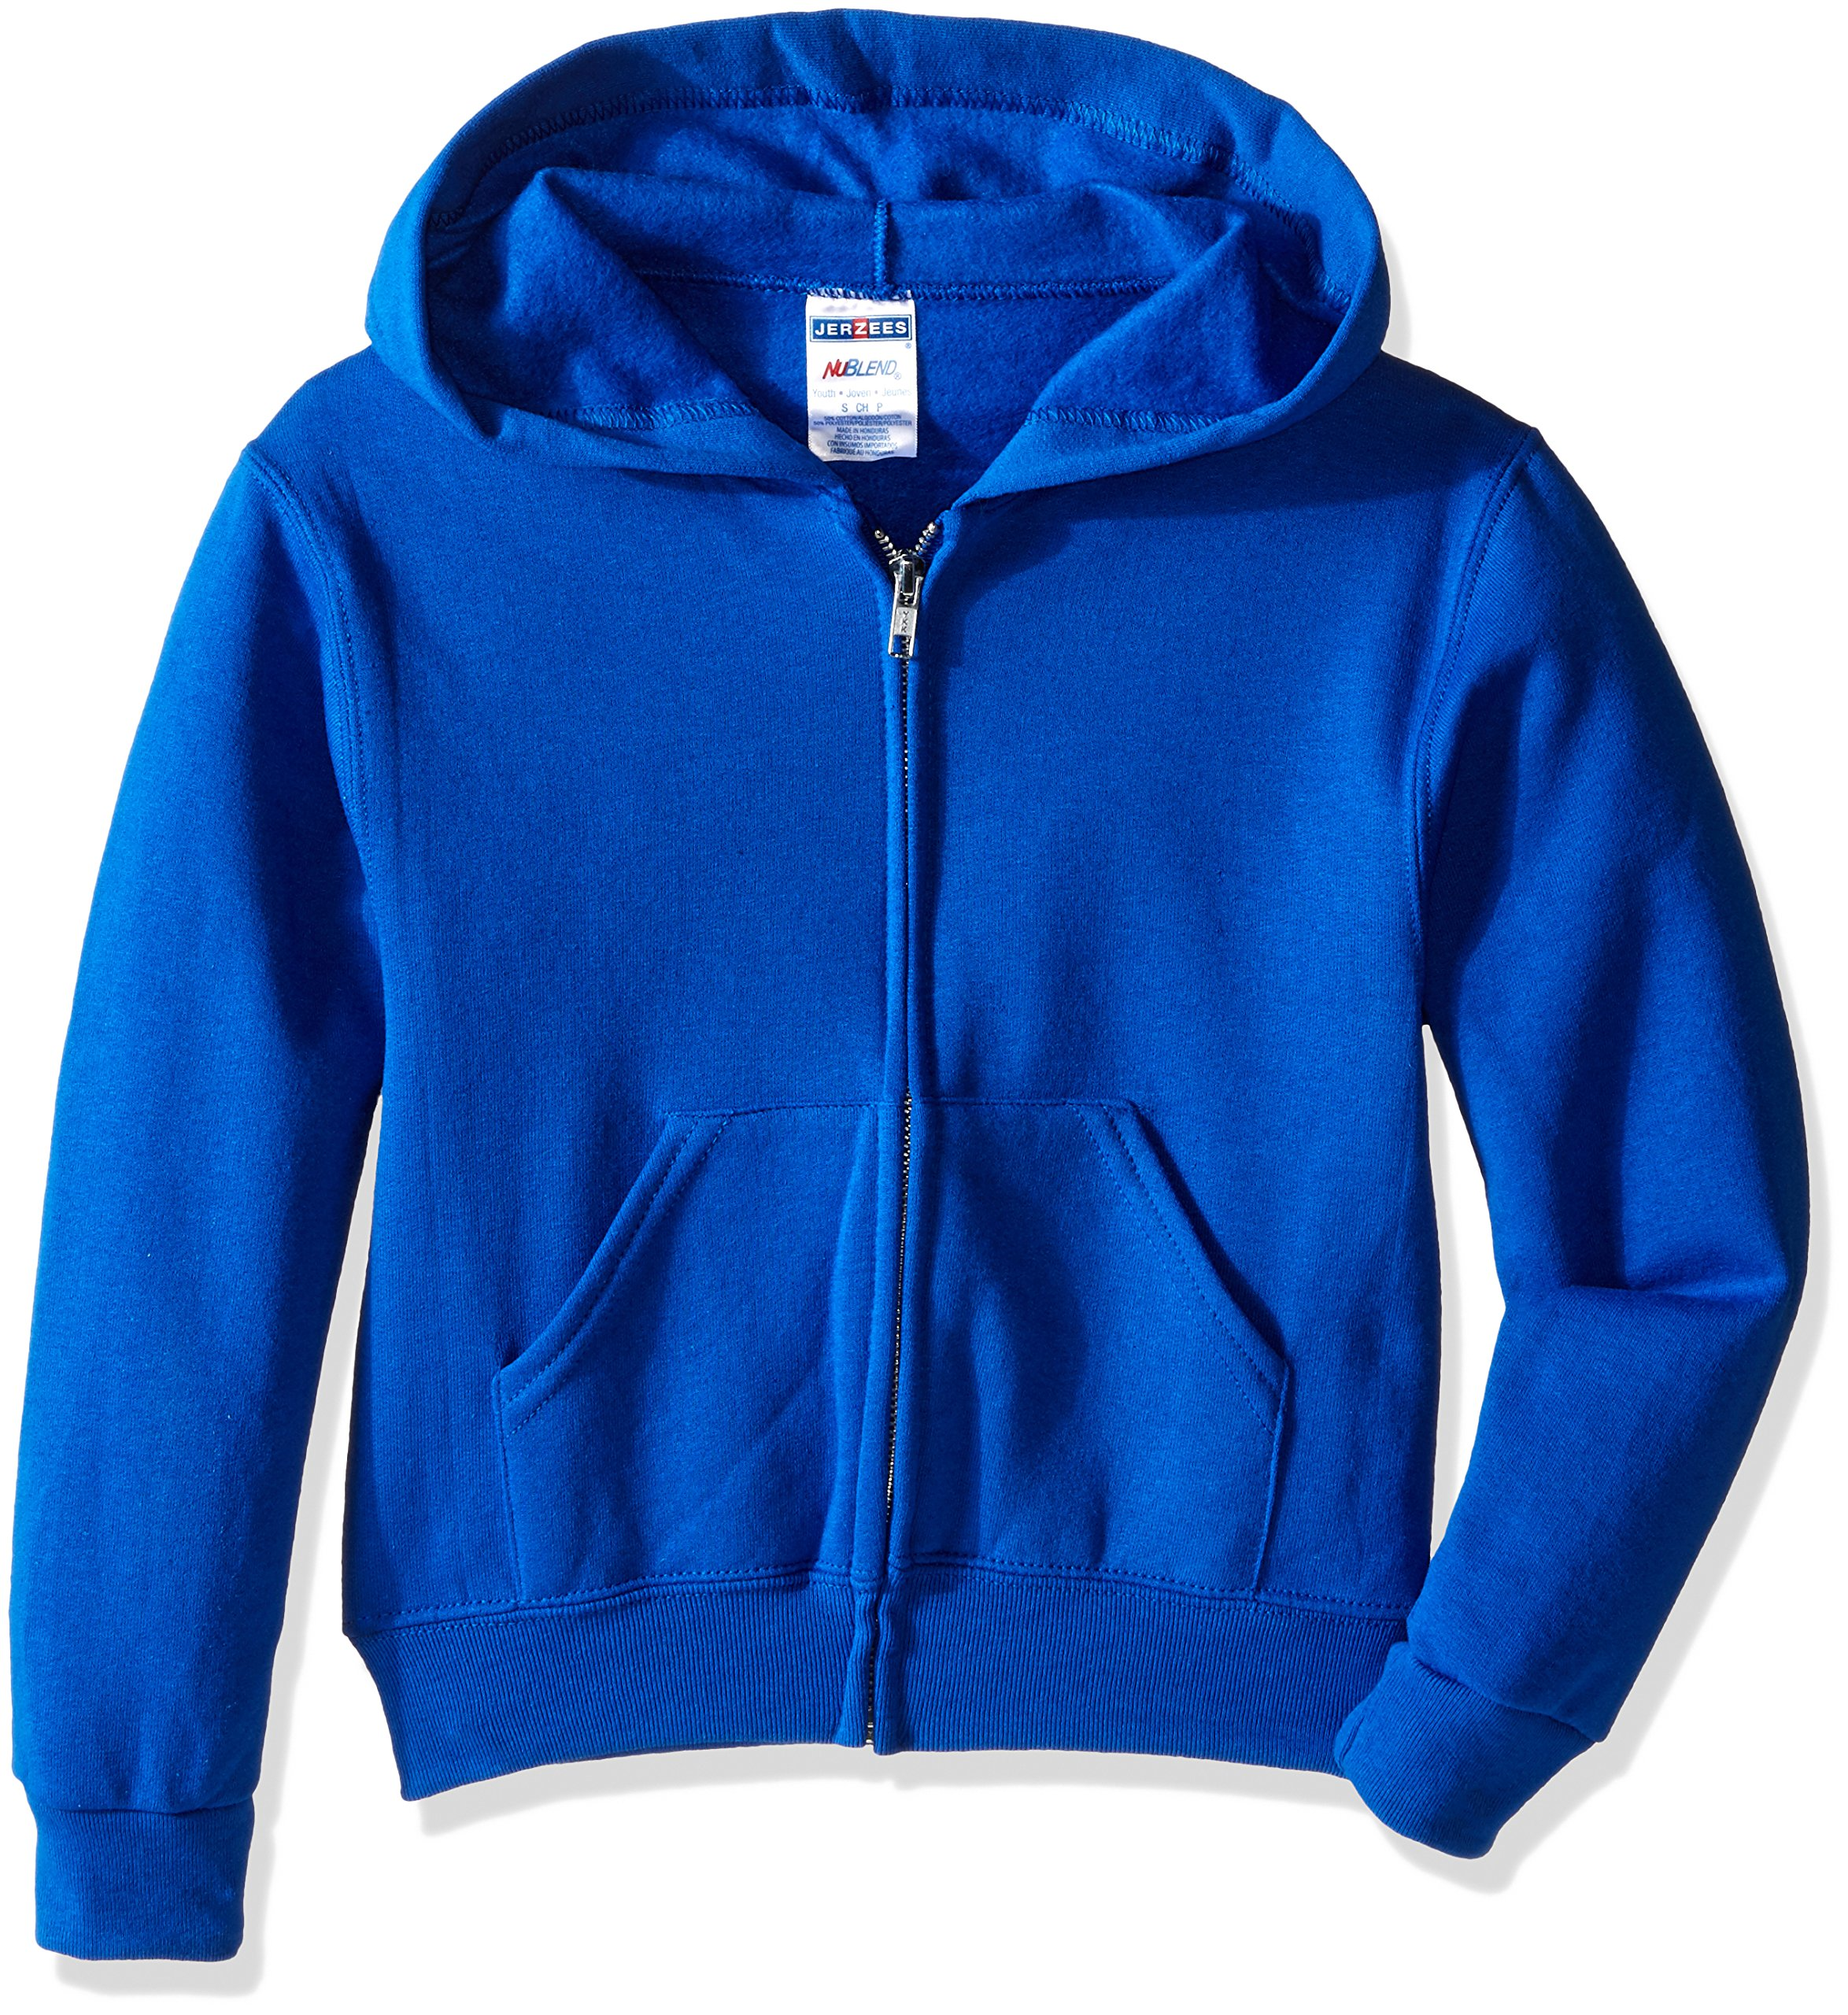 Jerzees Boys Fleece Sweatshirts Hoodies /& Sweatpants